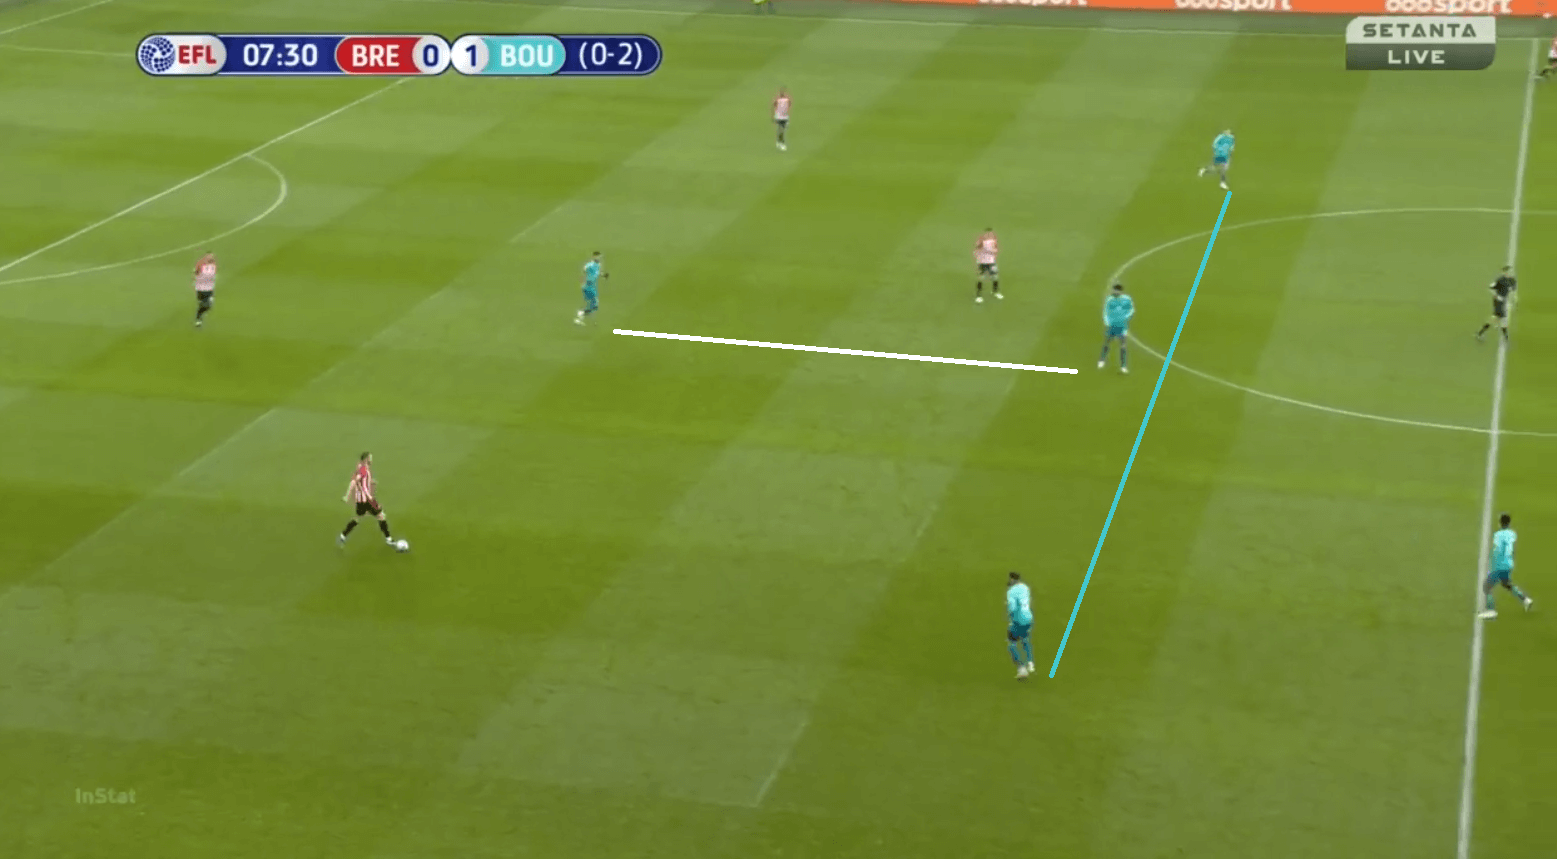 Brentford vs Bournemouth: How making the pitch wide proved too much for 10-man Cherries in EFL Championship Playoff 2nd leg - tactical analysis tactics